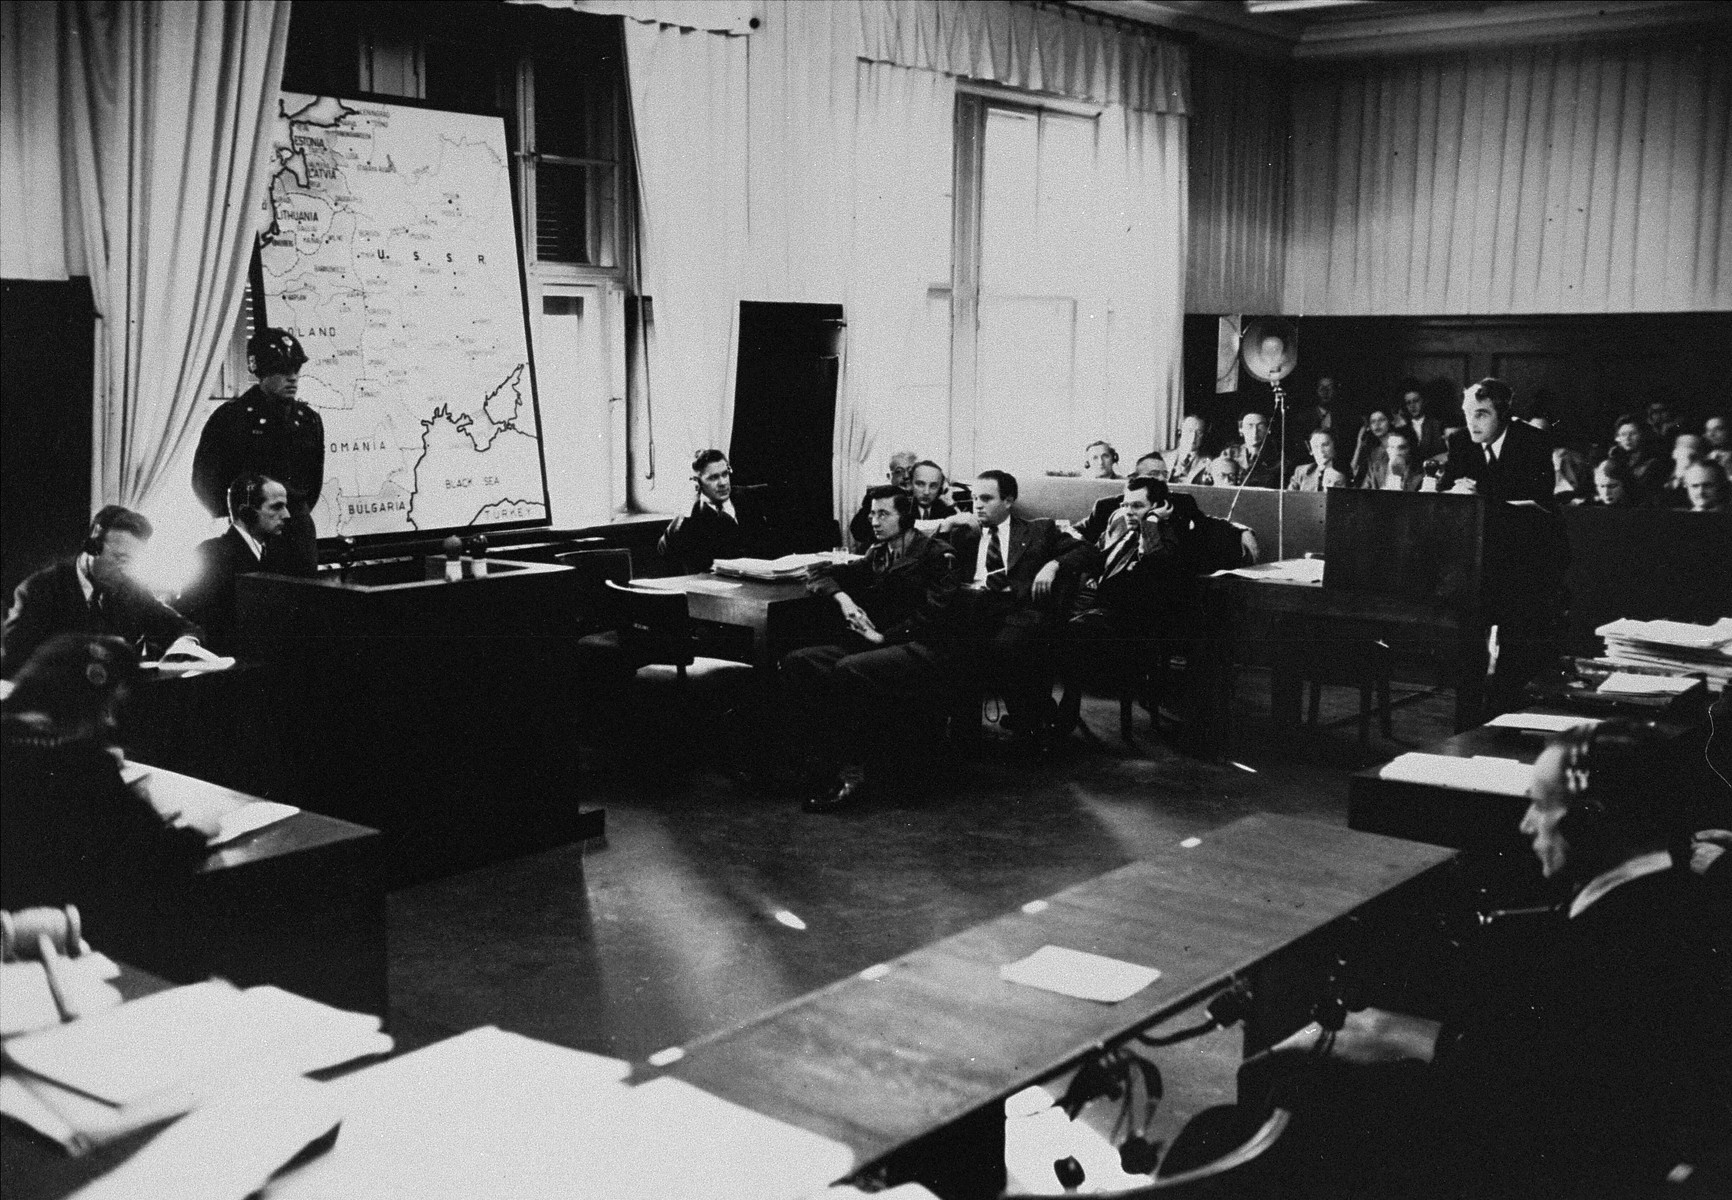 Defendant Dr. Otto Ohlendorf (right) gives testimony in a smaller courtroom in the Palace of Justice during the Einsatzgruppen Trial.